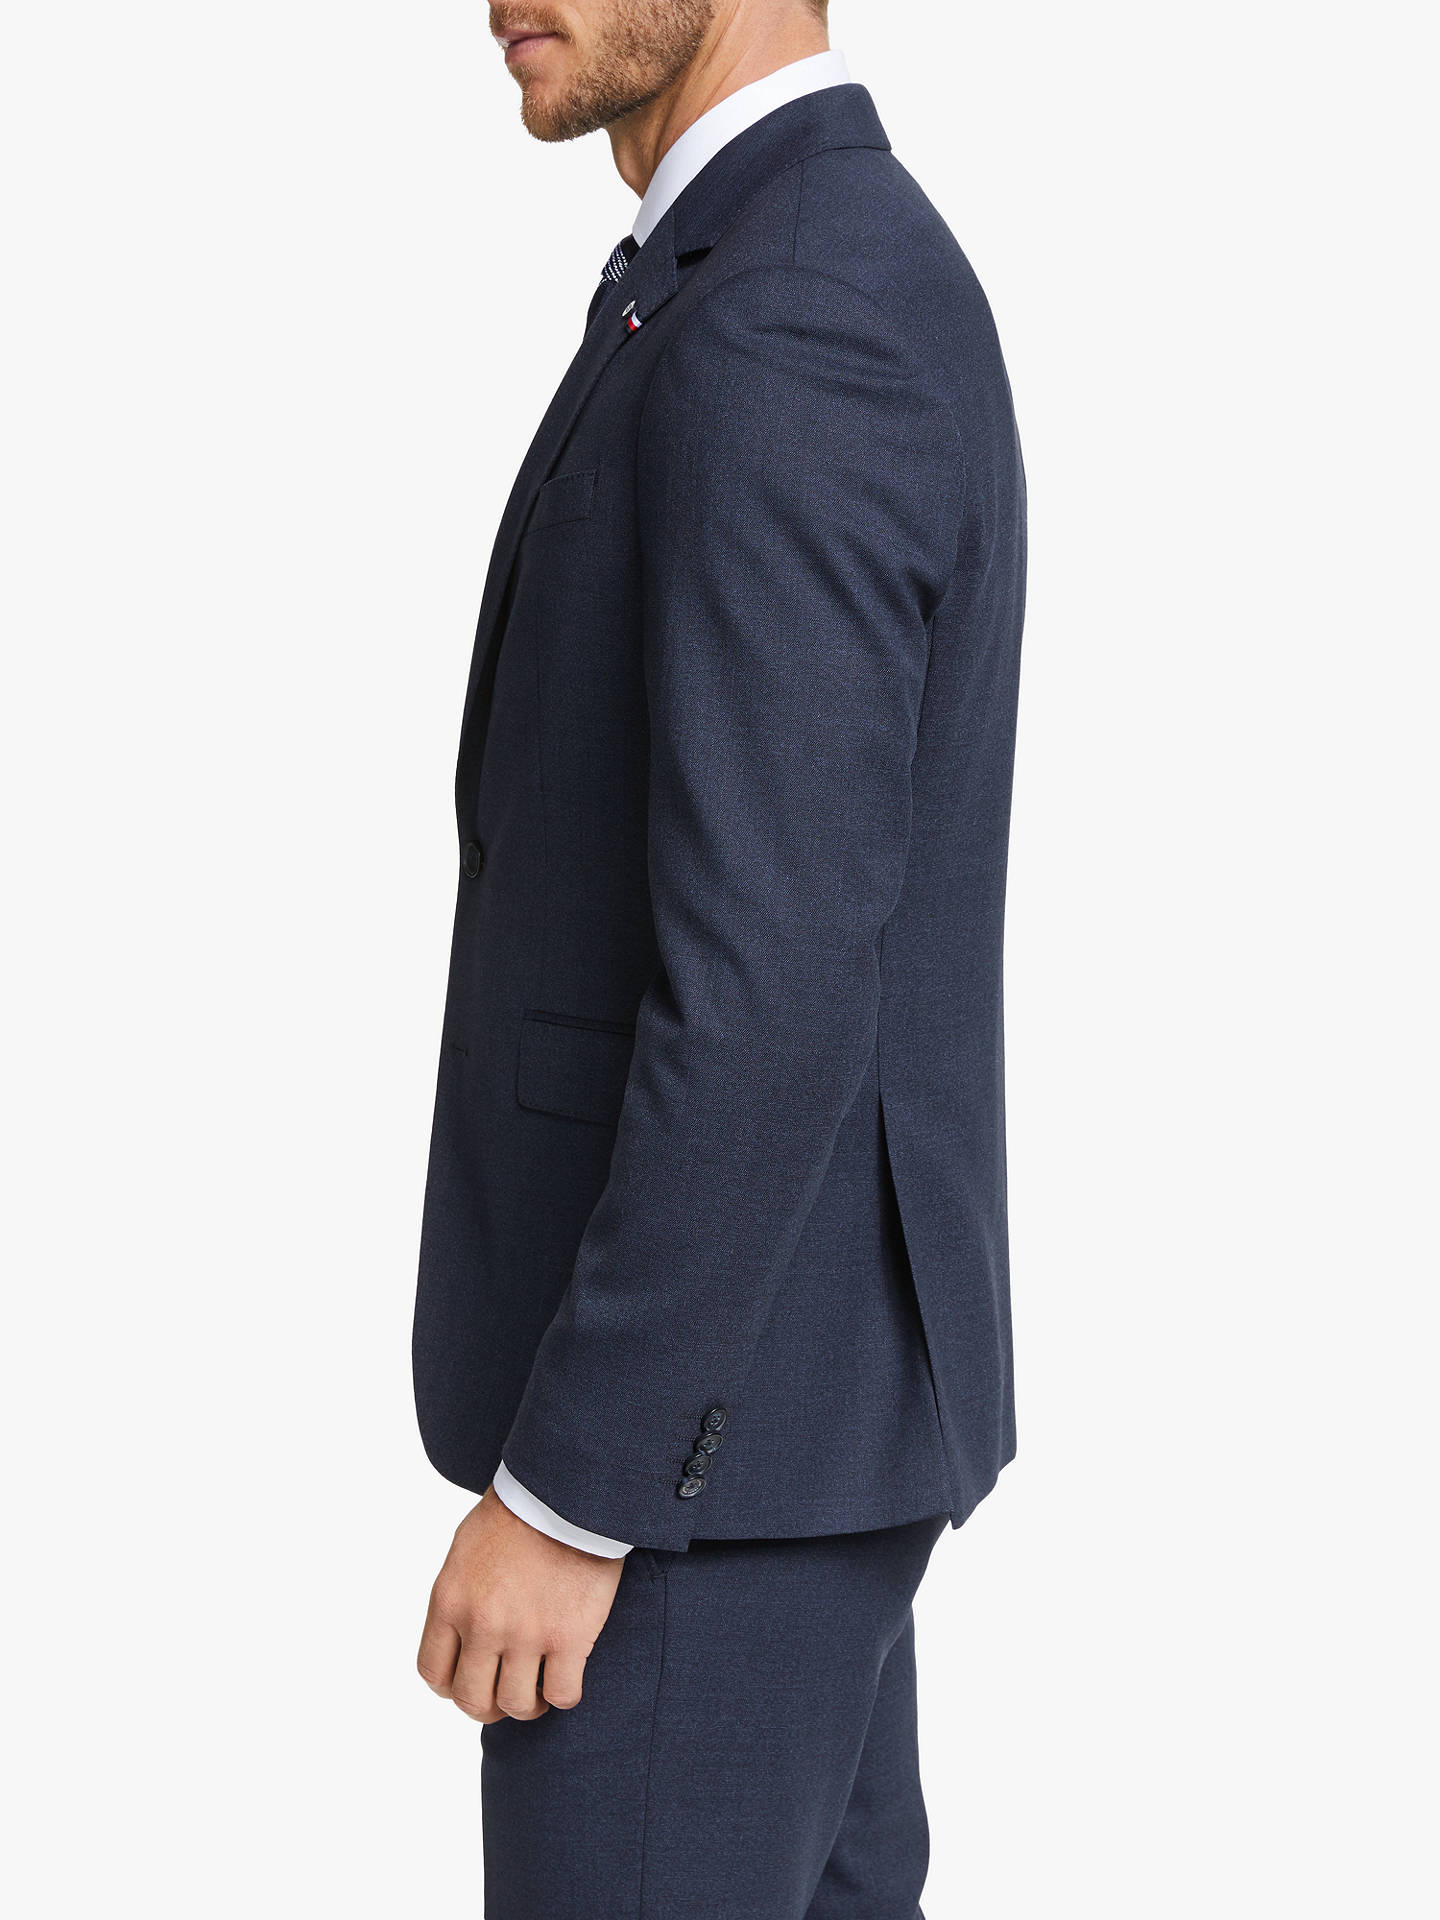 Tommy Hilfiger Stretch Wool Slim Fit Two Piece Suit Navy At John Lewis Partners